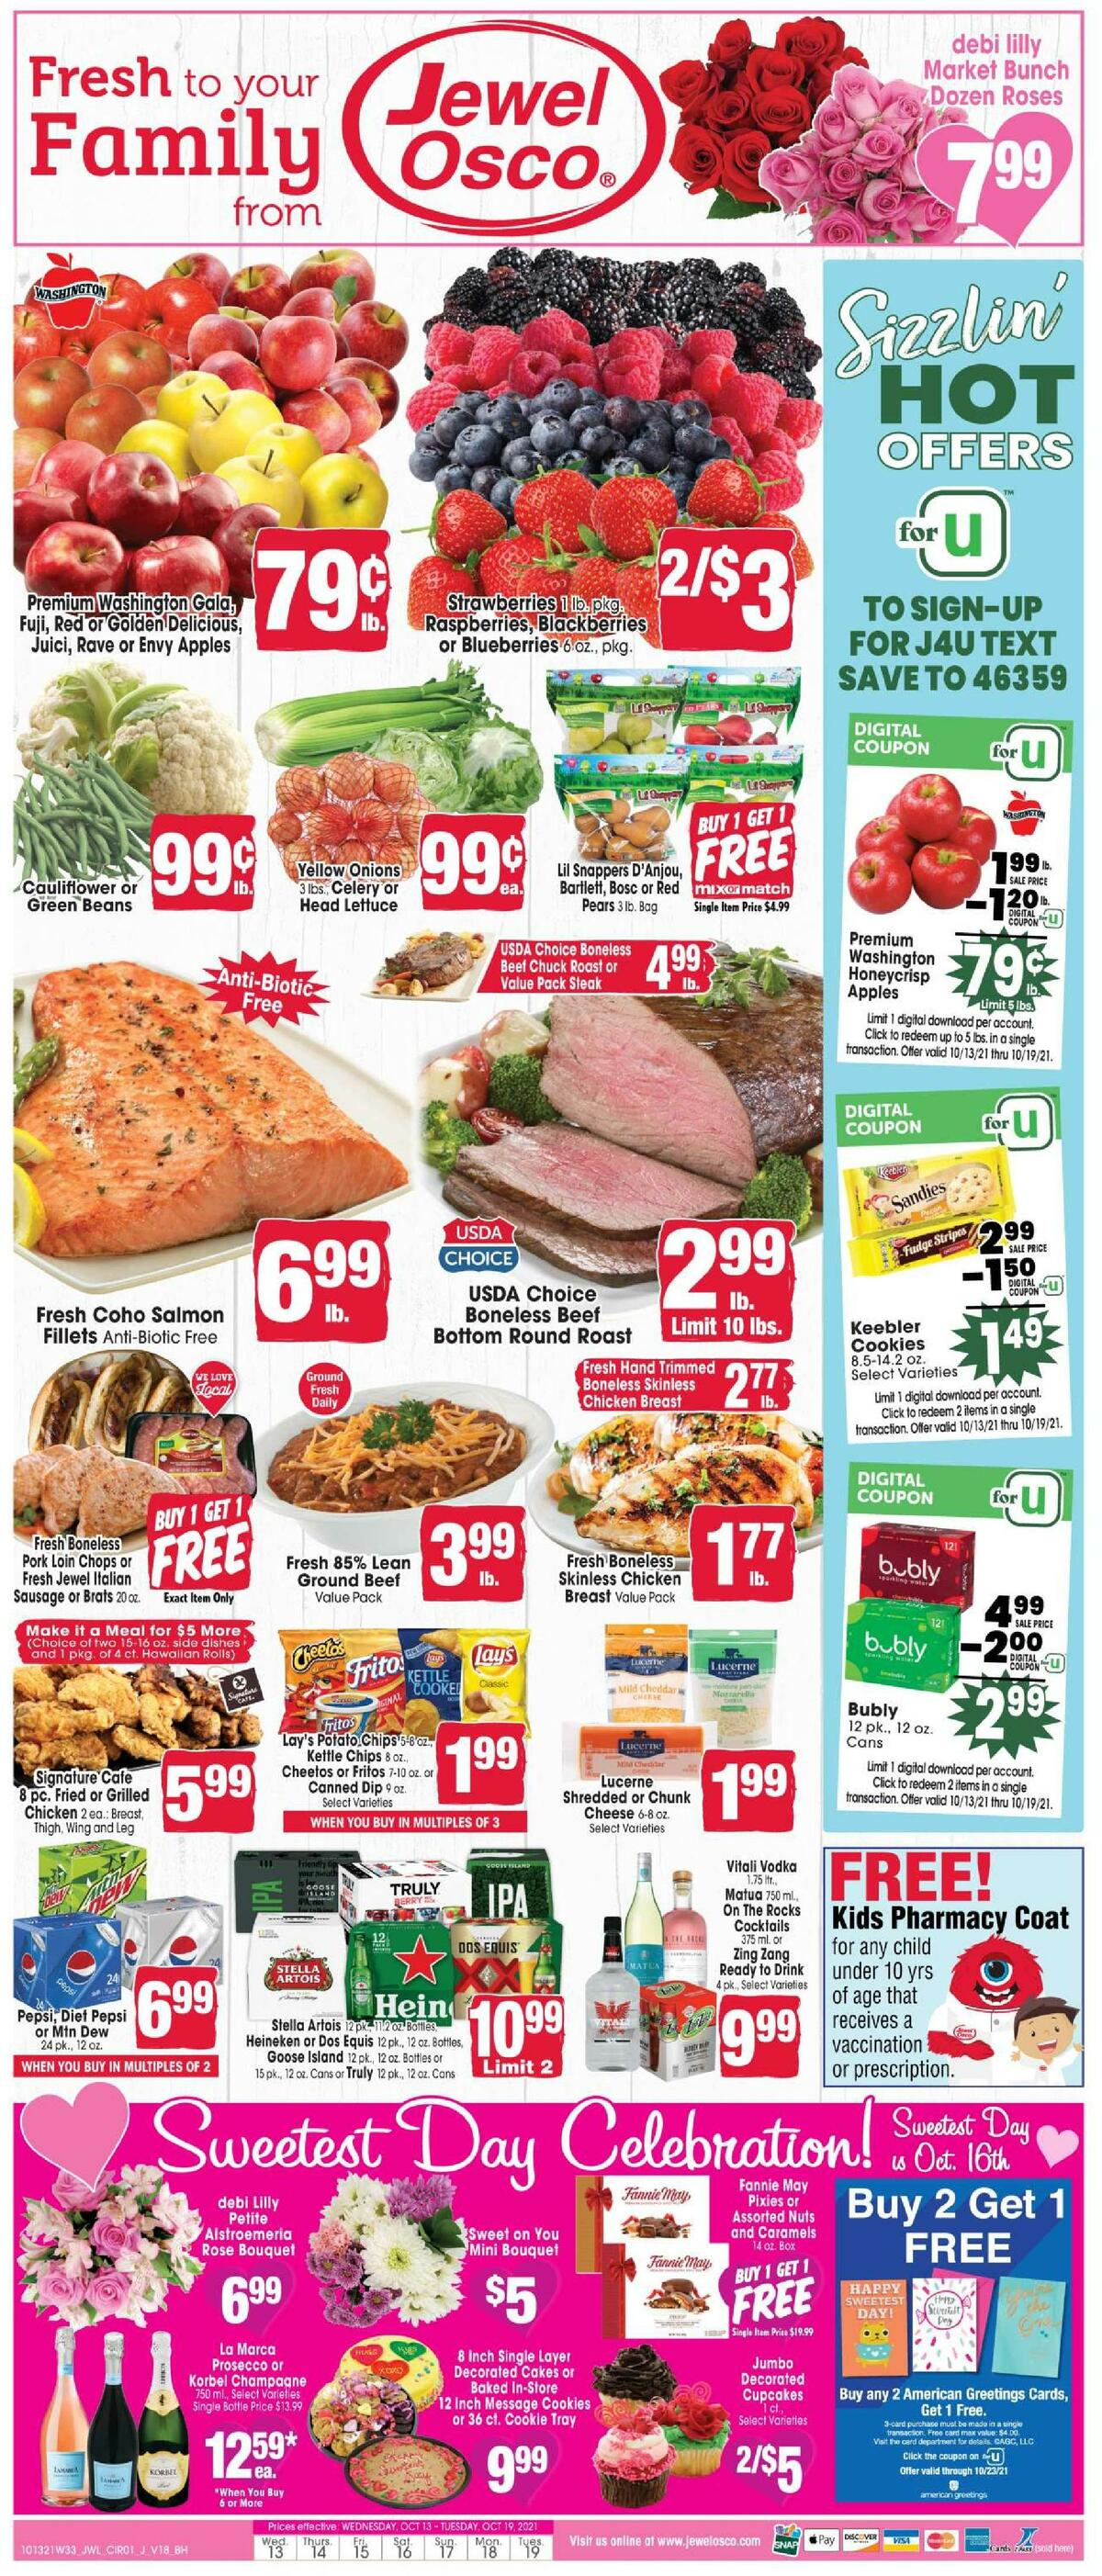 Jewel Osco Weekly Ad from October 13